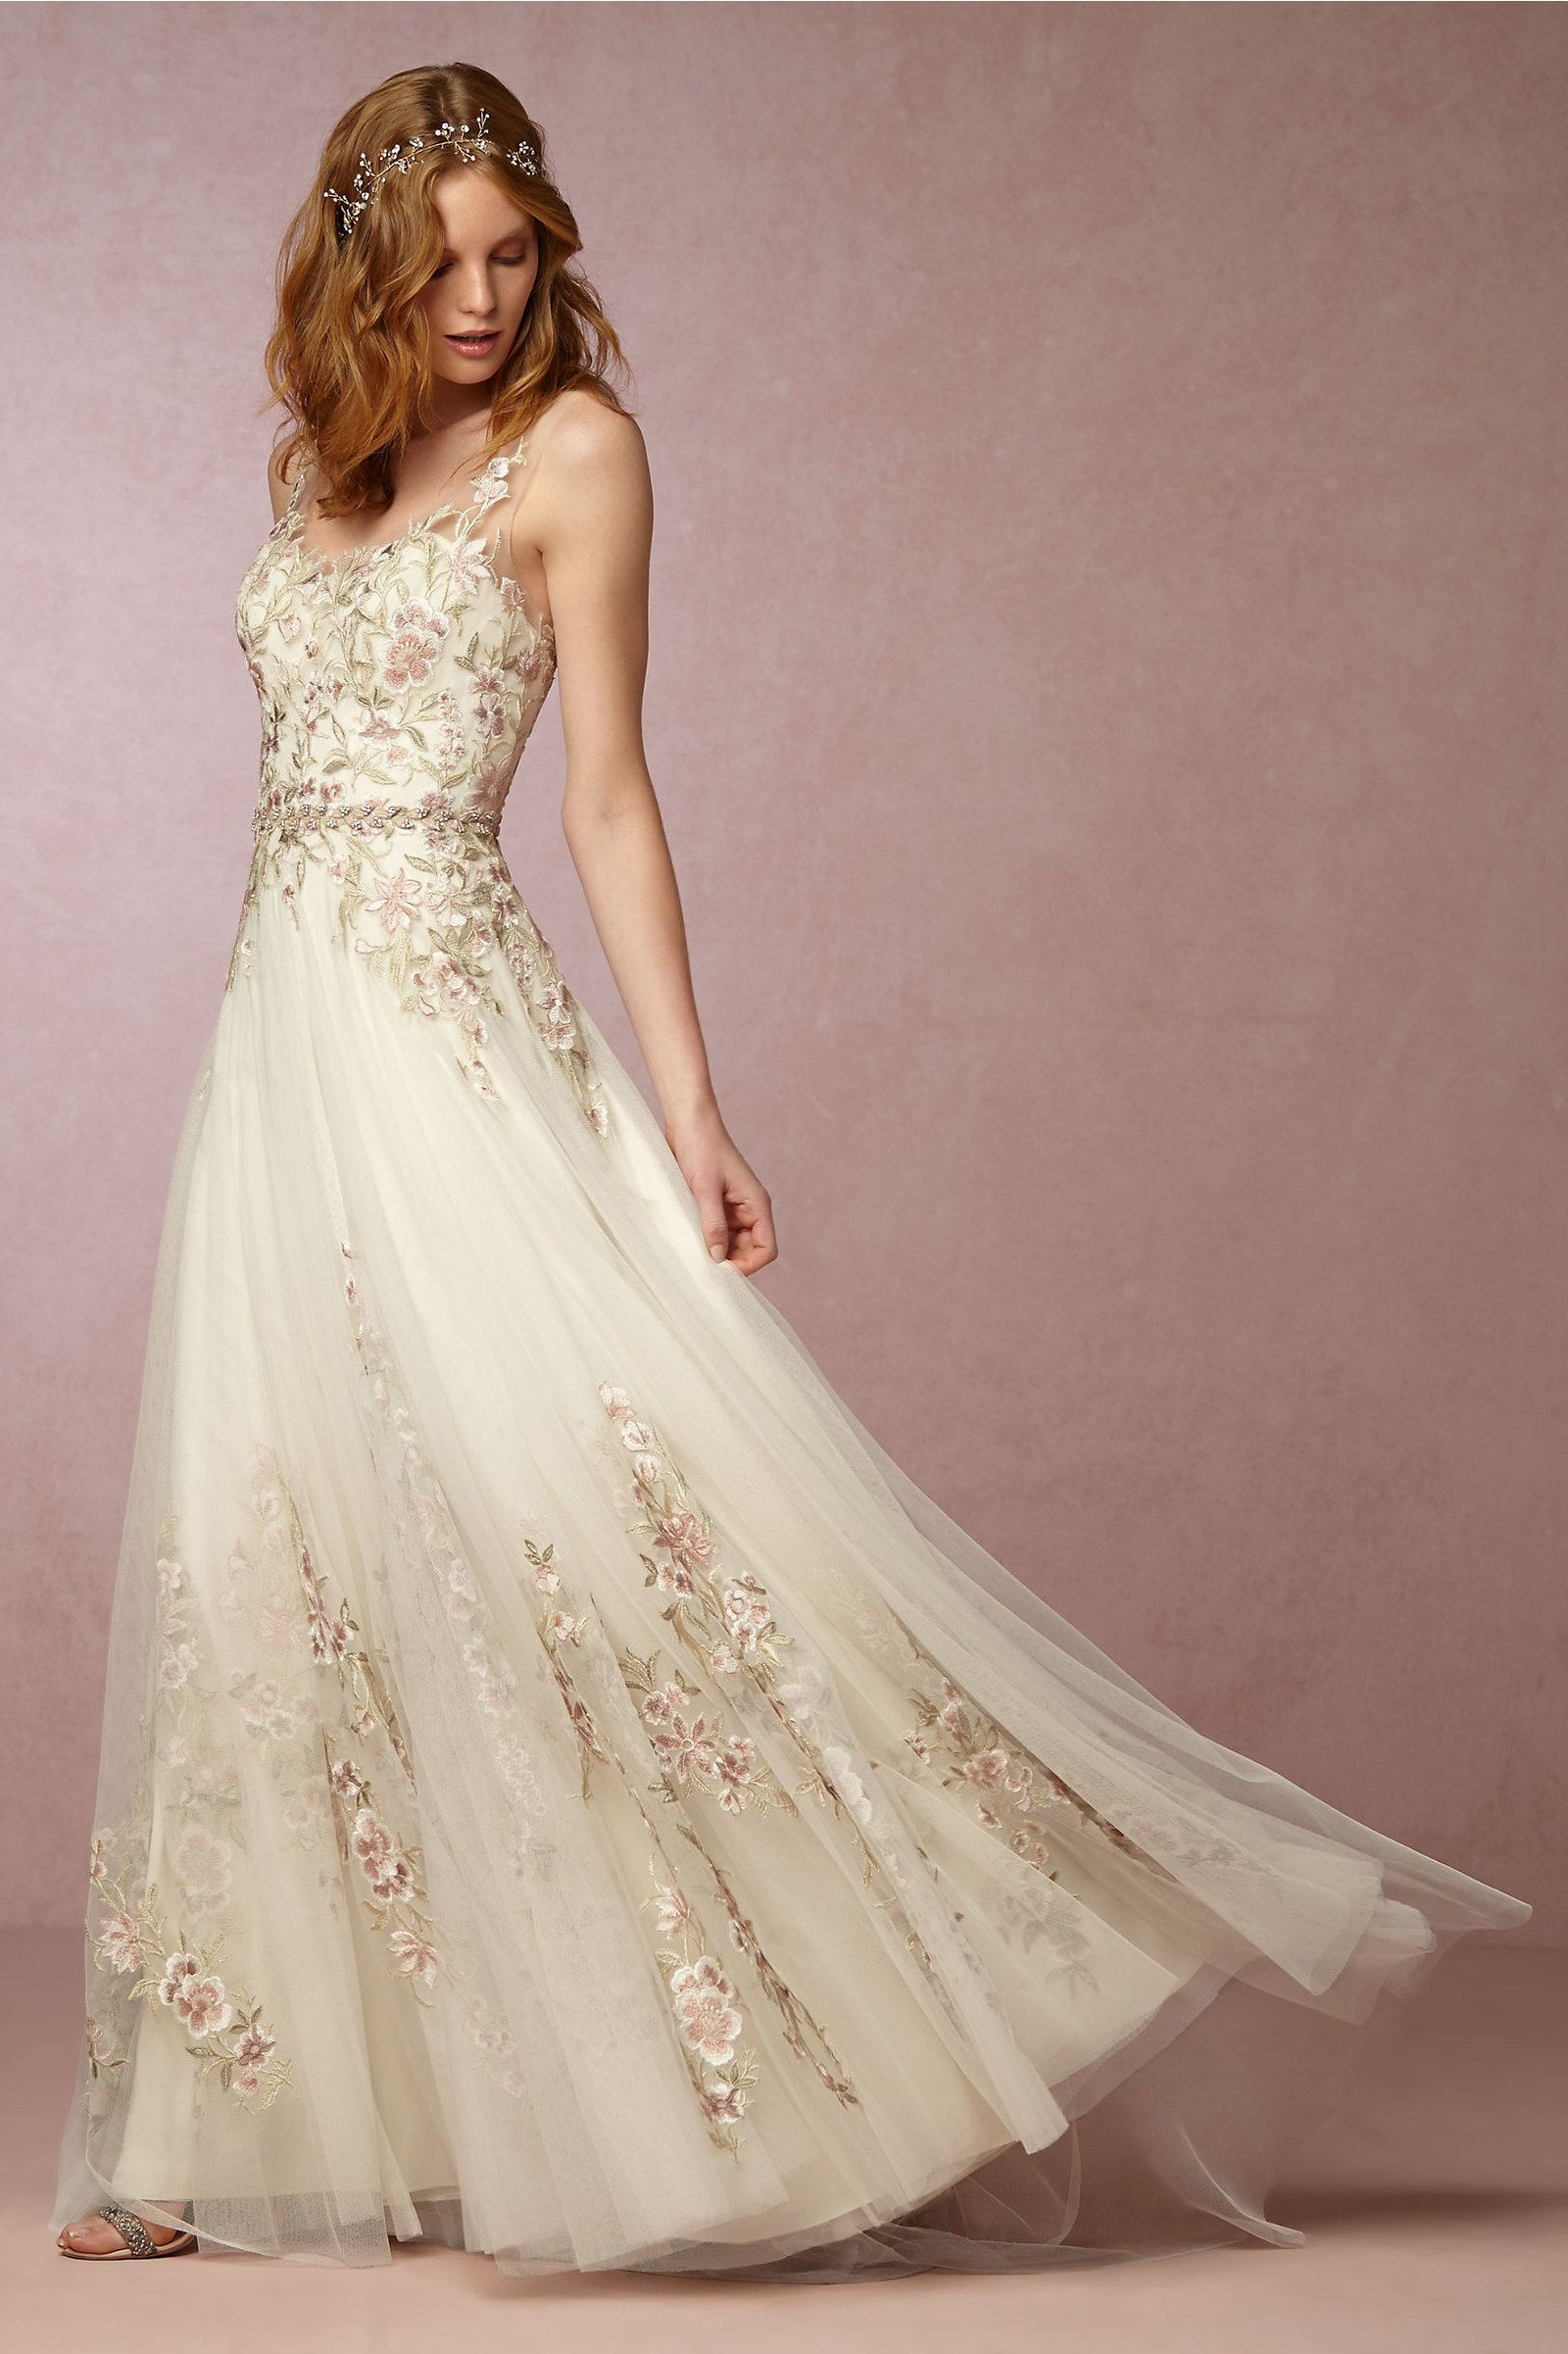 34 Wedding Dresses You'll Want To Wear Even If You're Not Getting Married